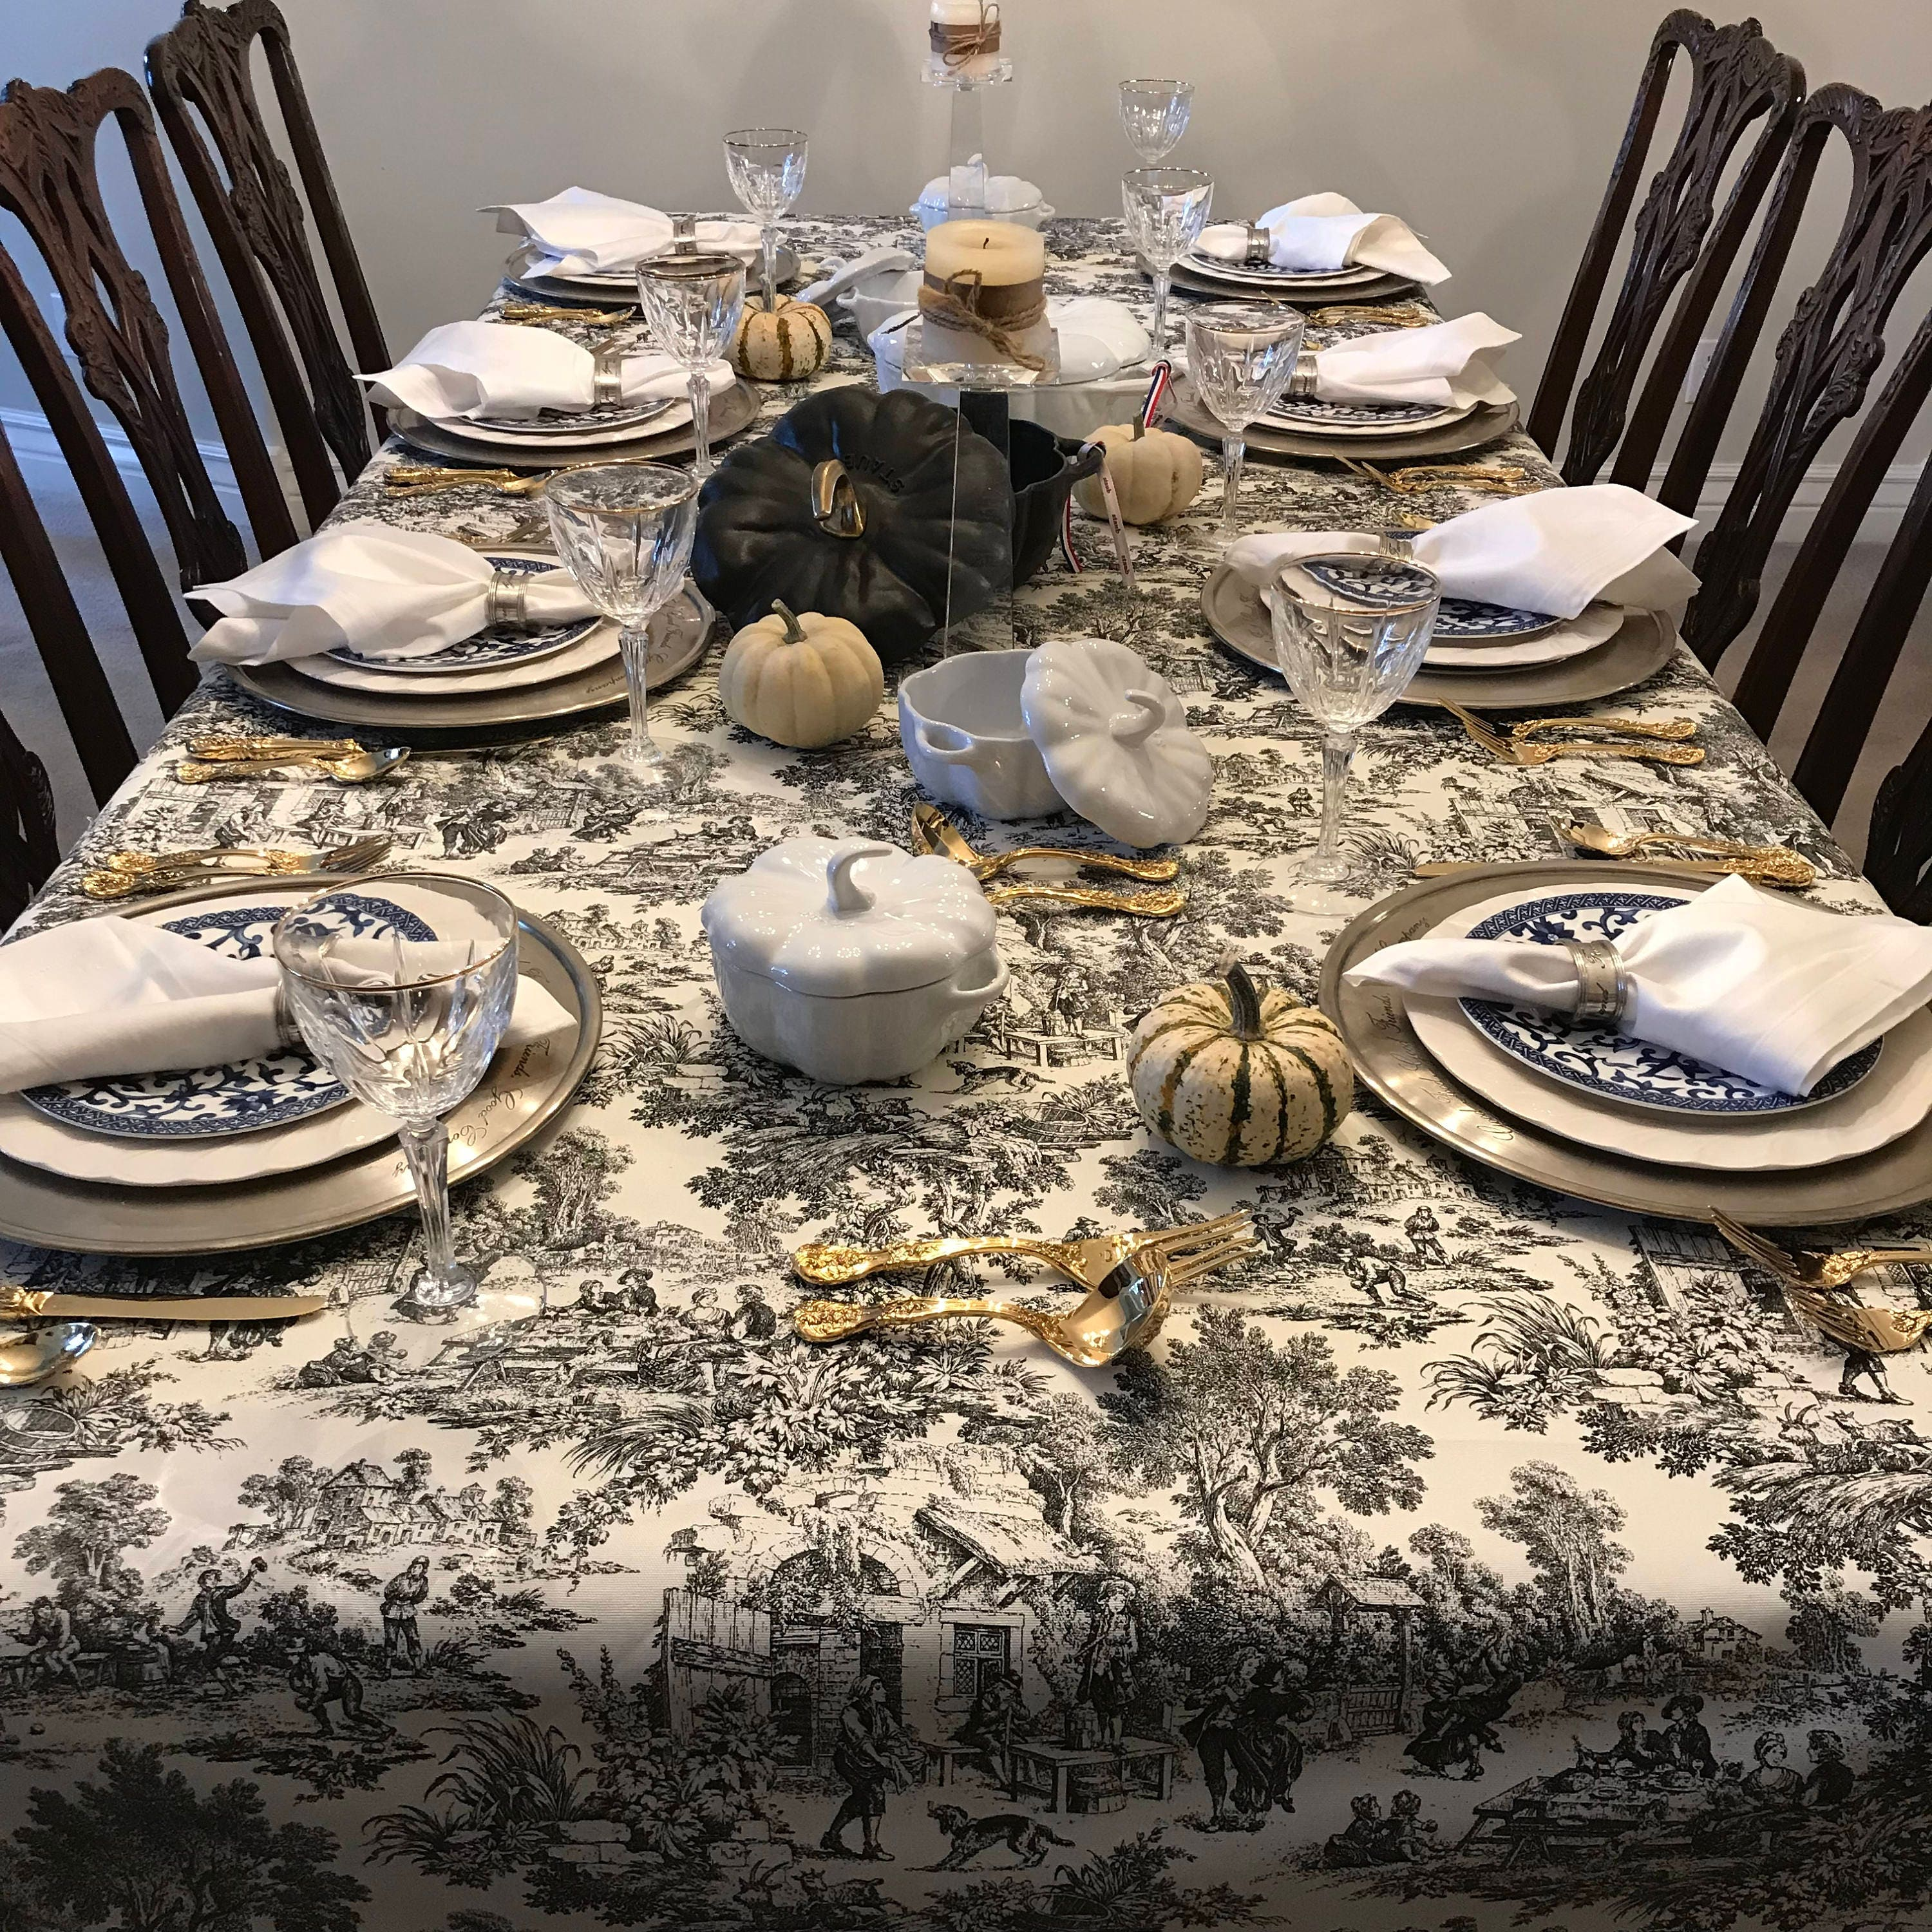 Black And White Toile Tablecloth French Toile Tablecloth Thanksgiving Tablecloth Christmas Tablecloth French Pastoral Toile Tablecloth